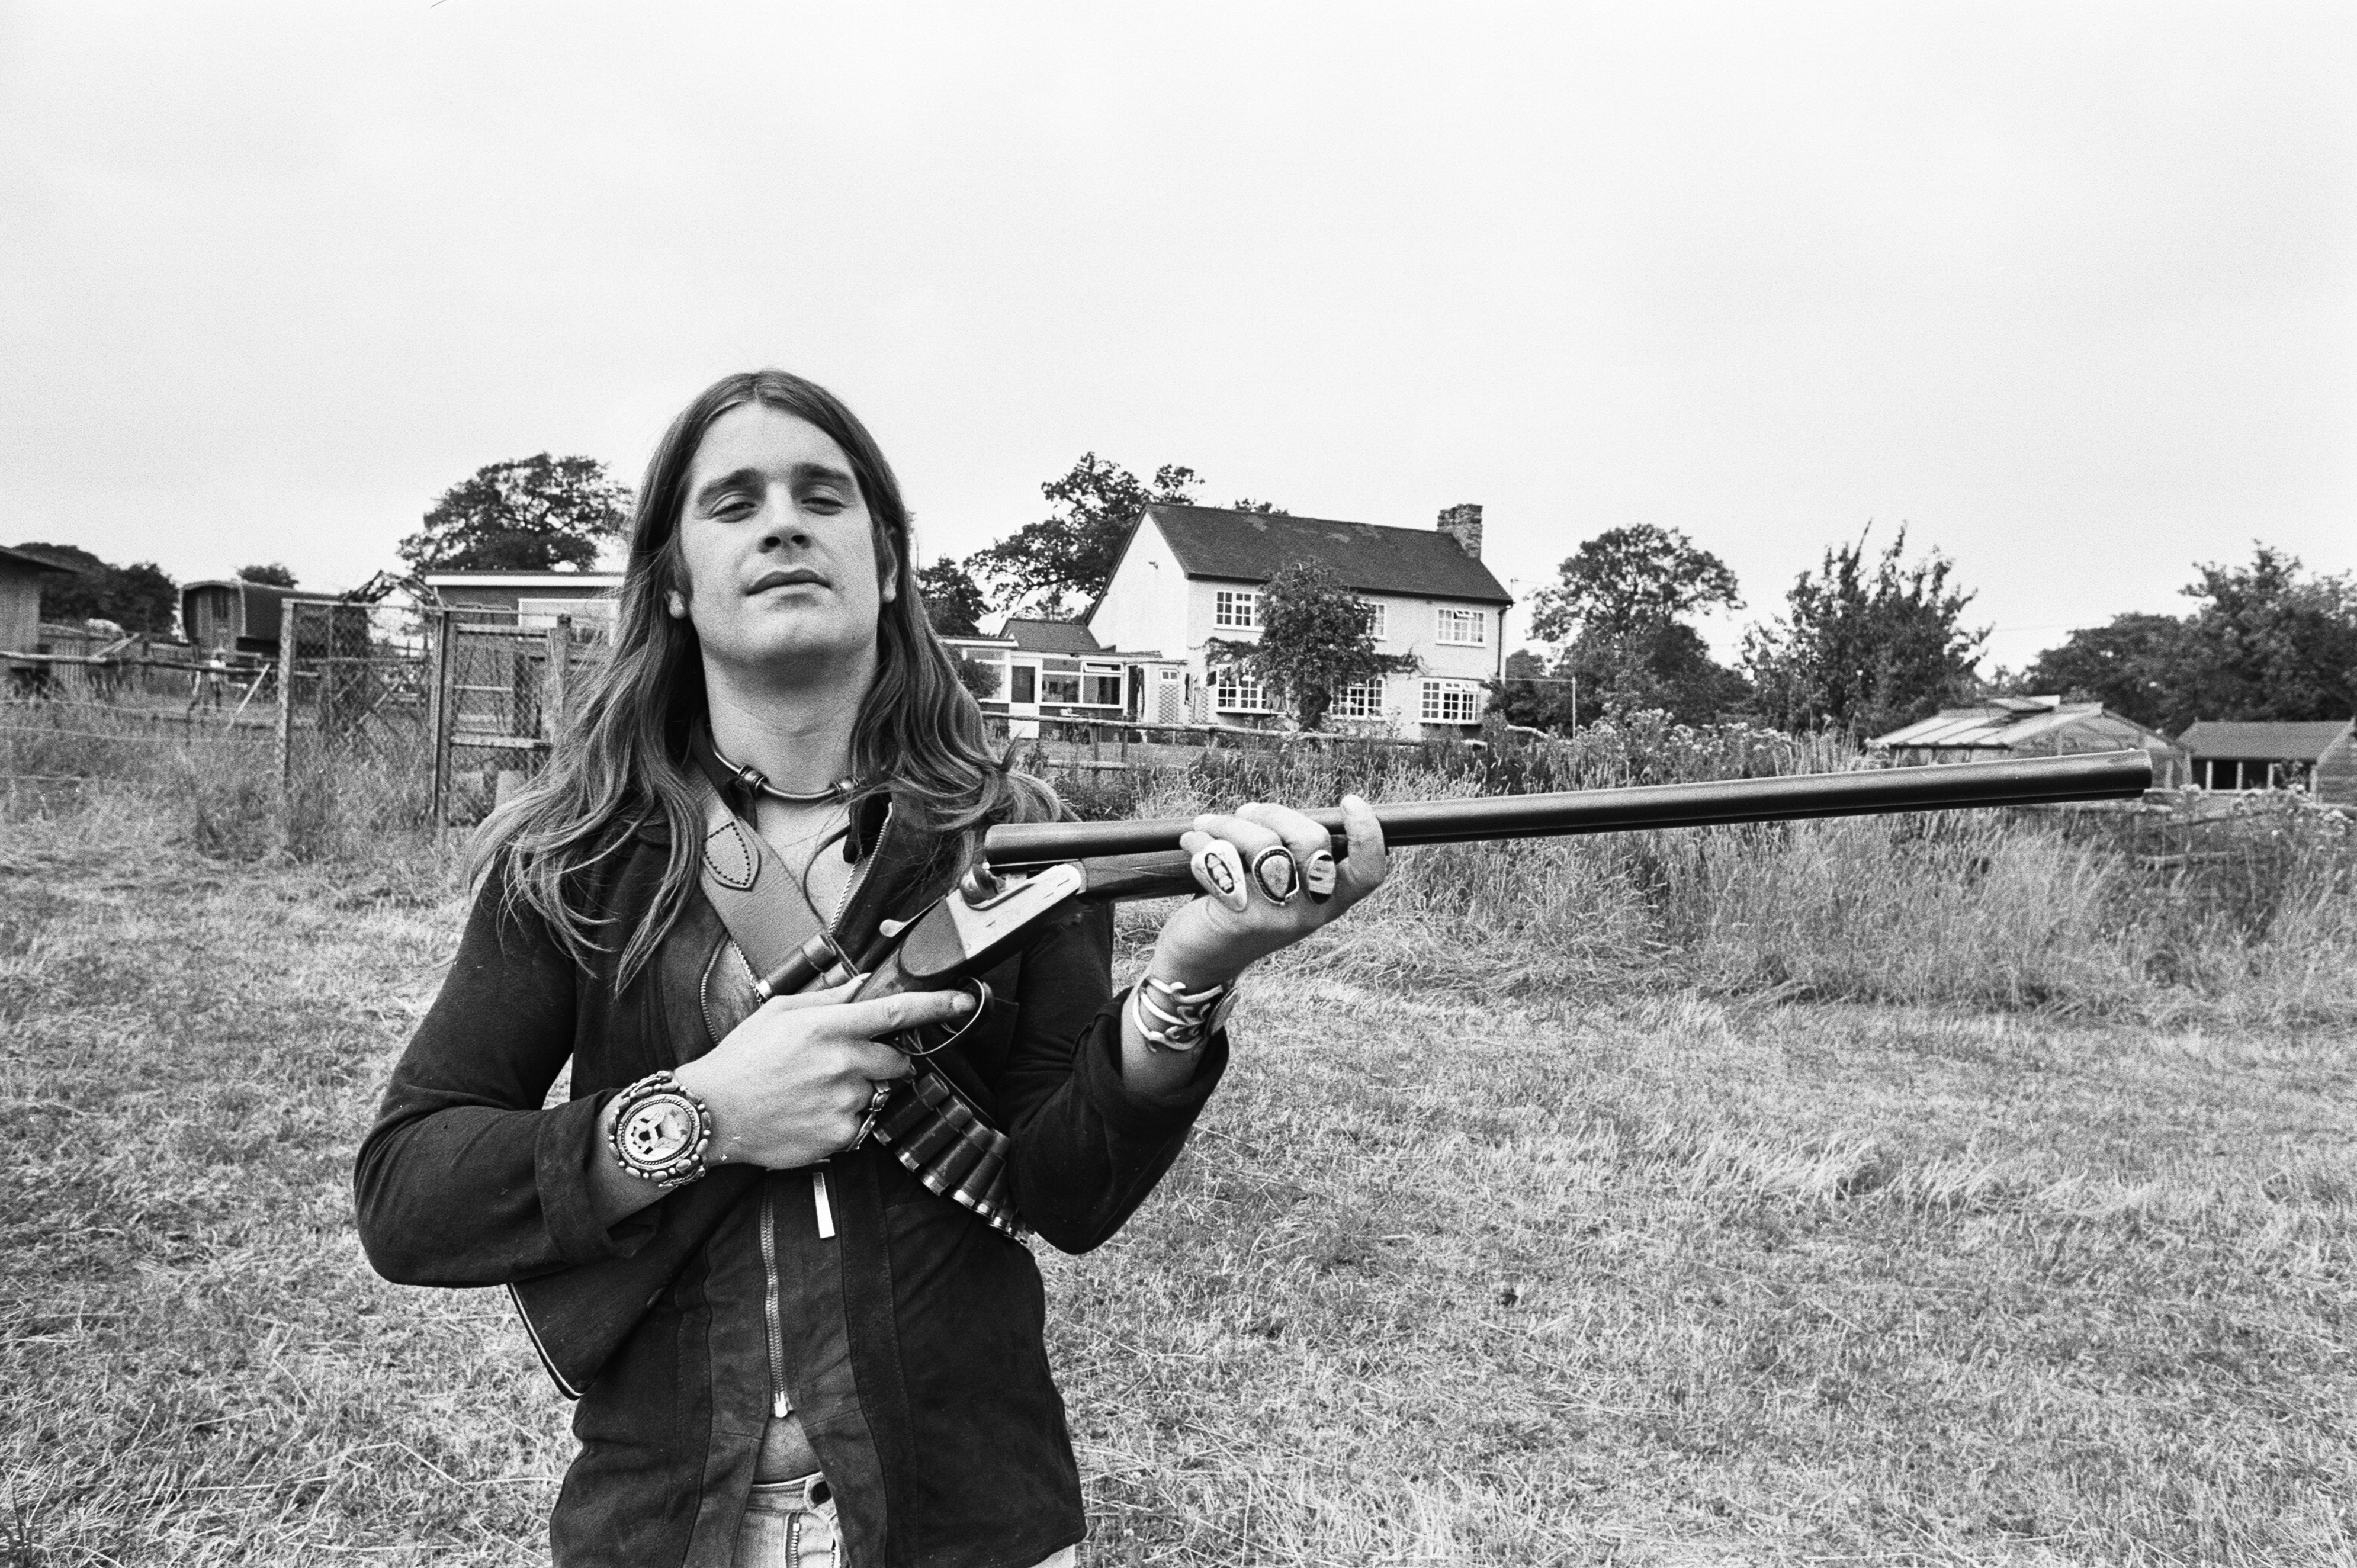 black_sabbath_ozzy_osbourne_with_a_shotgun_at_home_1976_poster_h_00530893.jpg